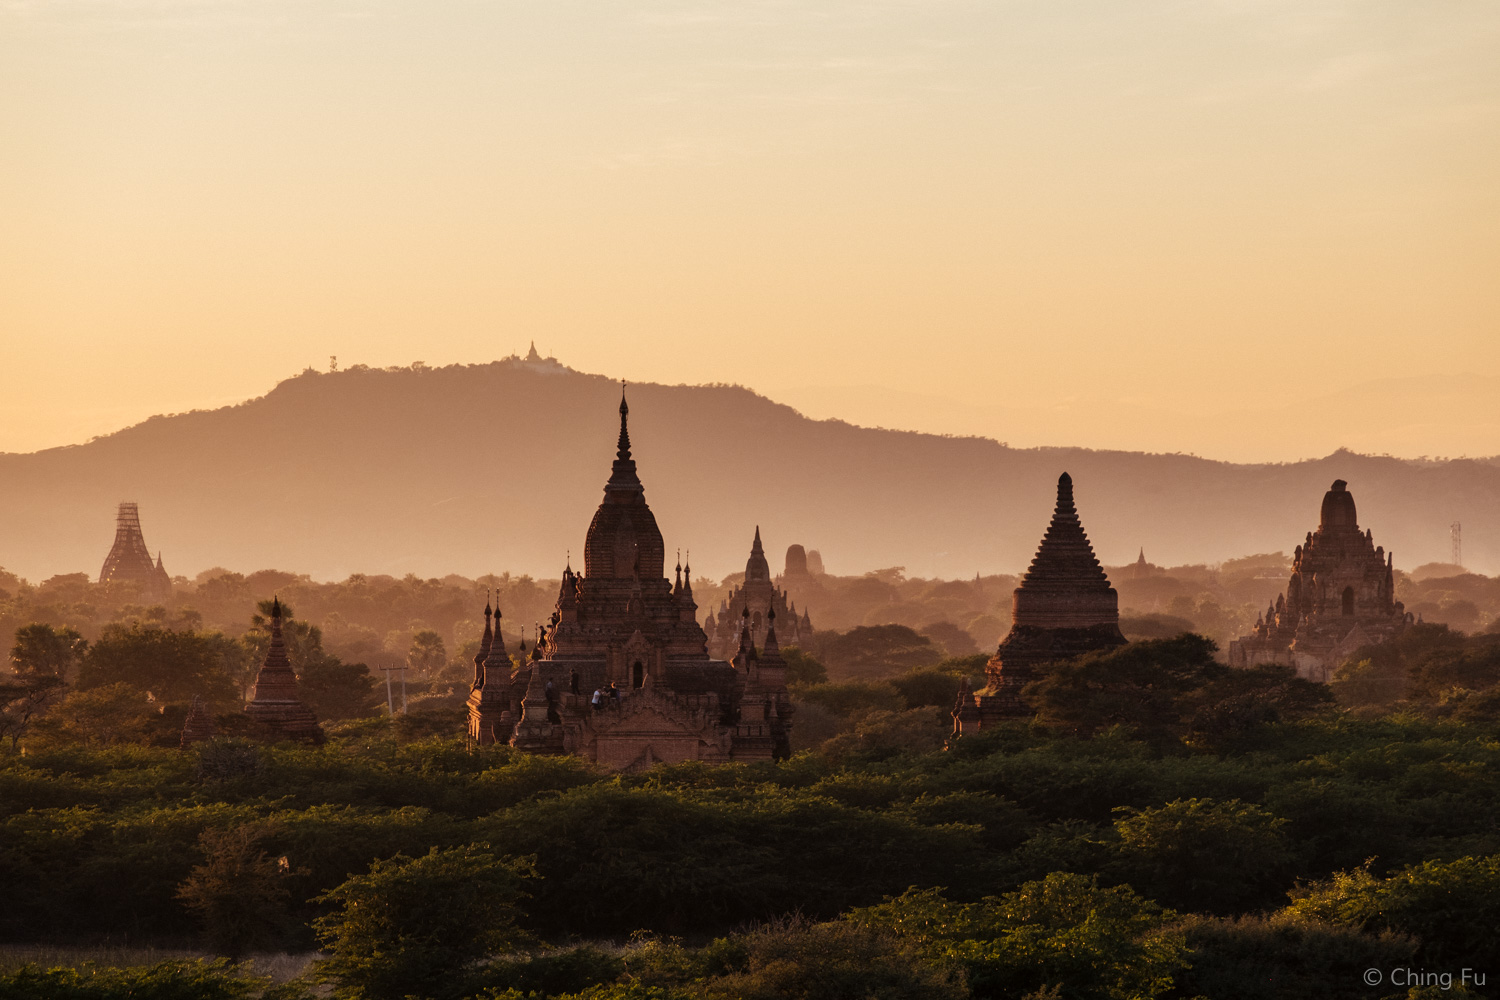 Sunset over Bagan temples.